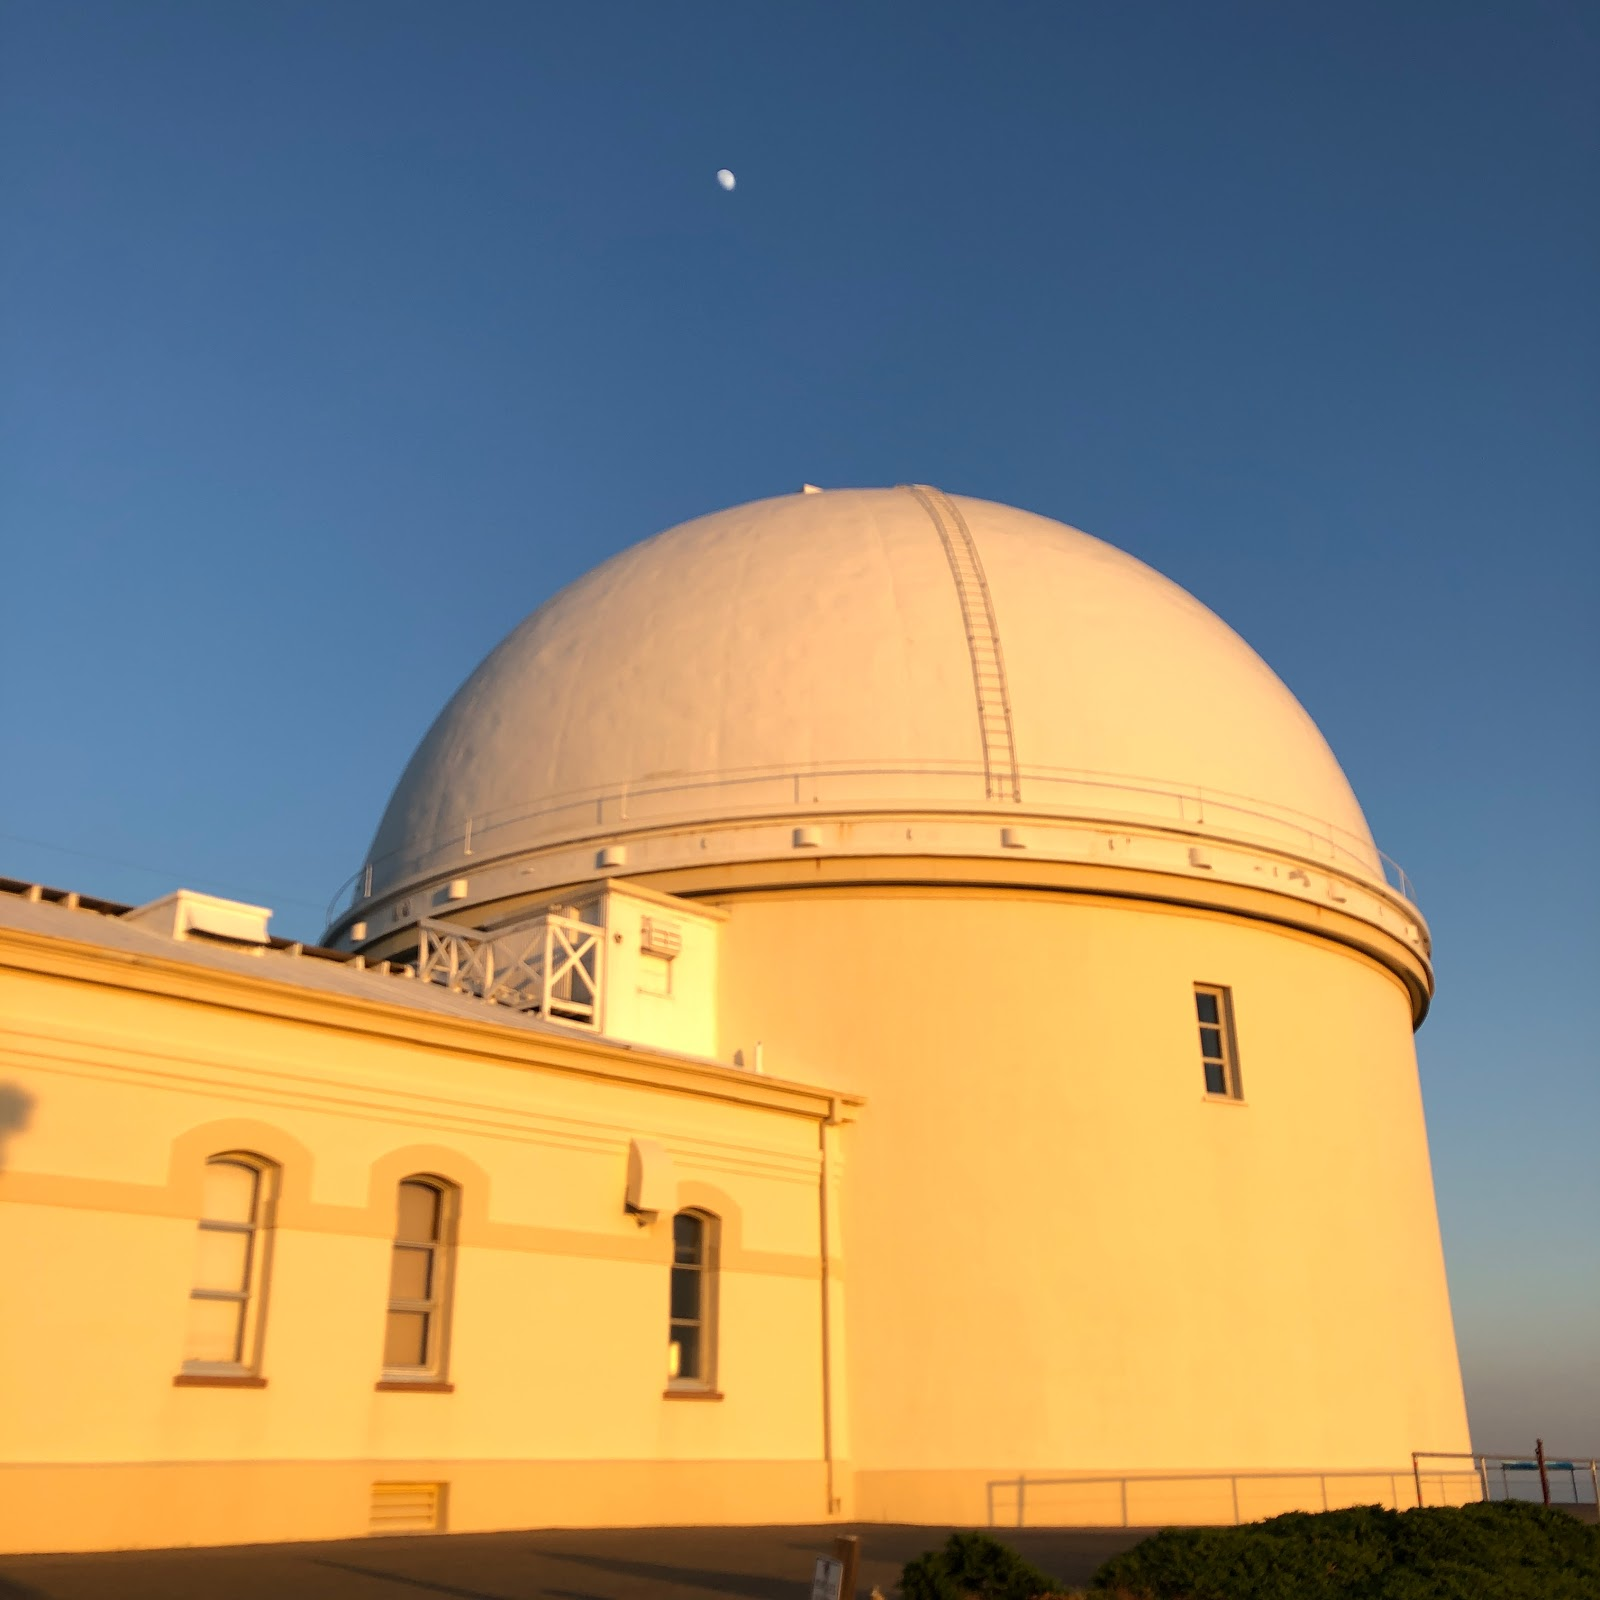 lick-observatory-summer-blonde-anal-story